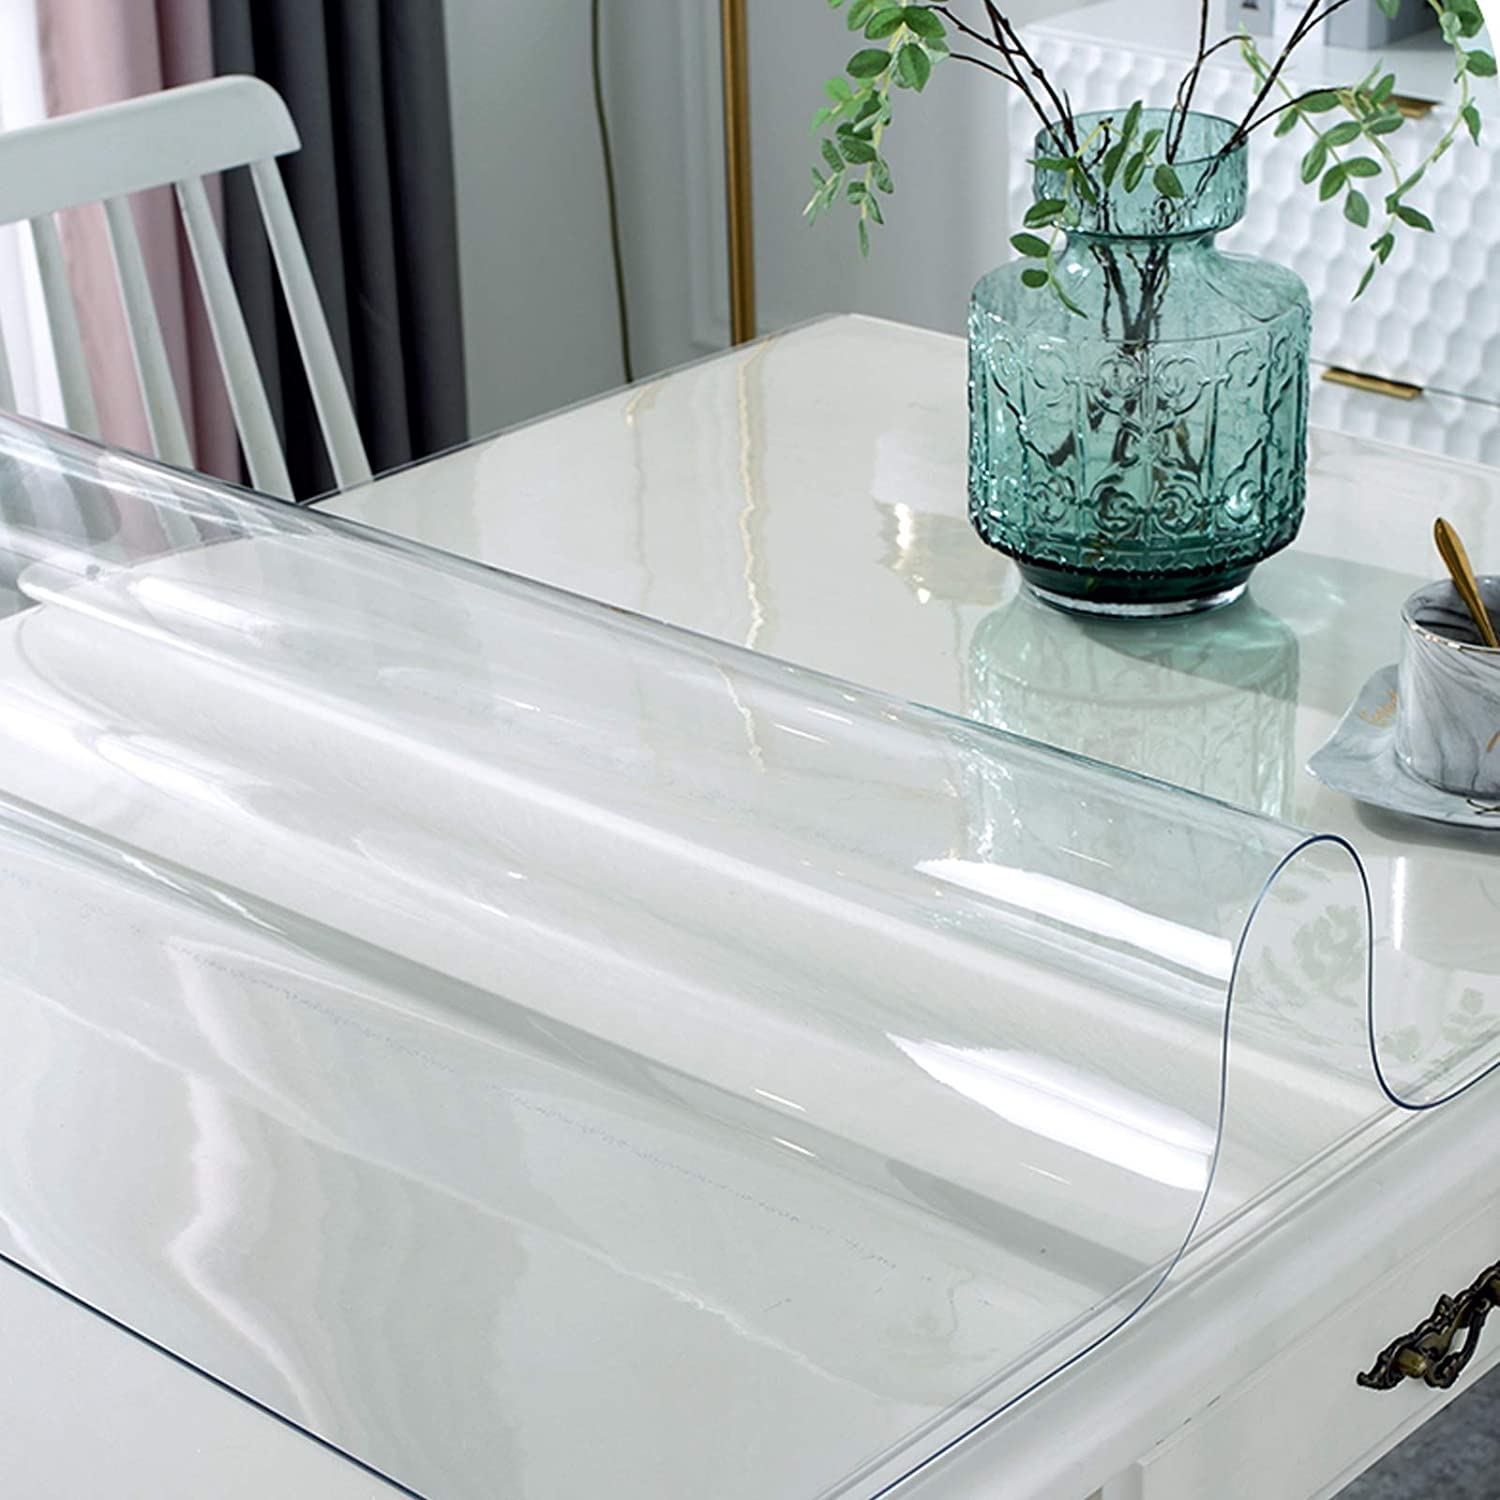 High quality new Geovne Crystal Clear Max 88% OFF Table Protector Clean Easy Plastic to